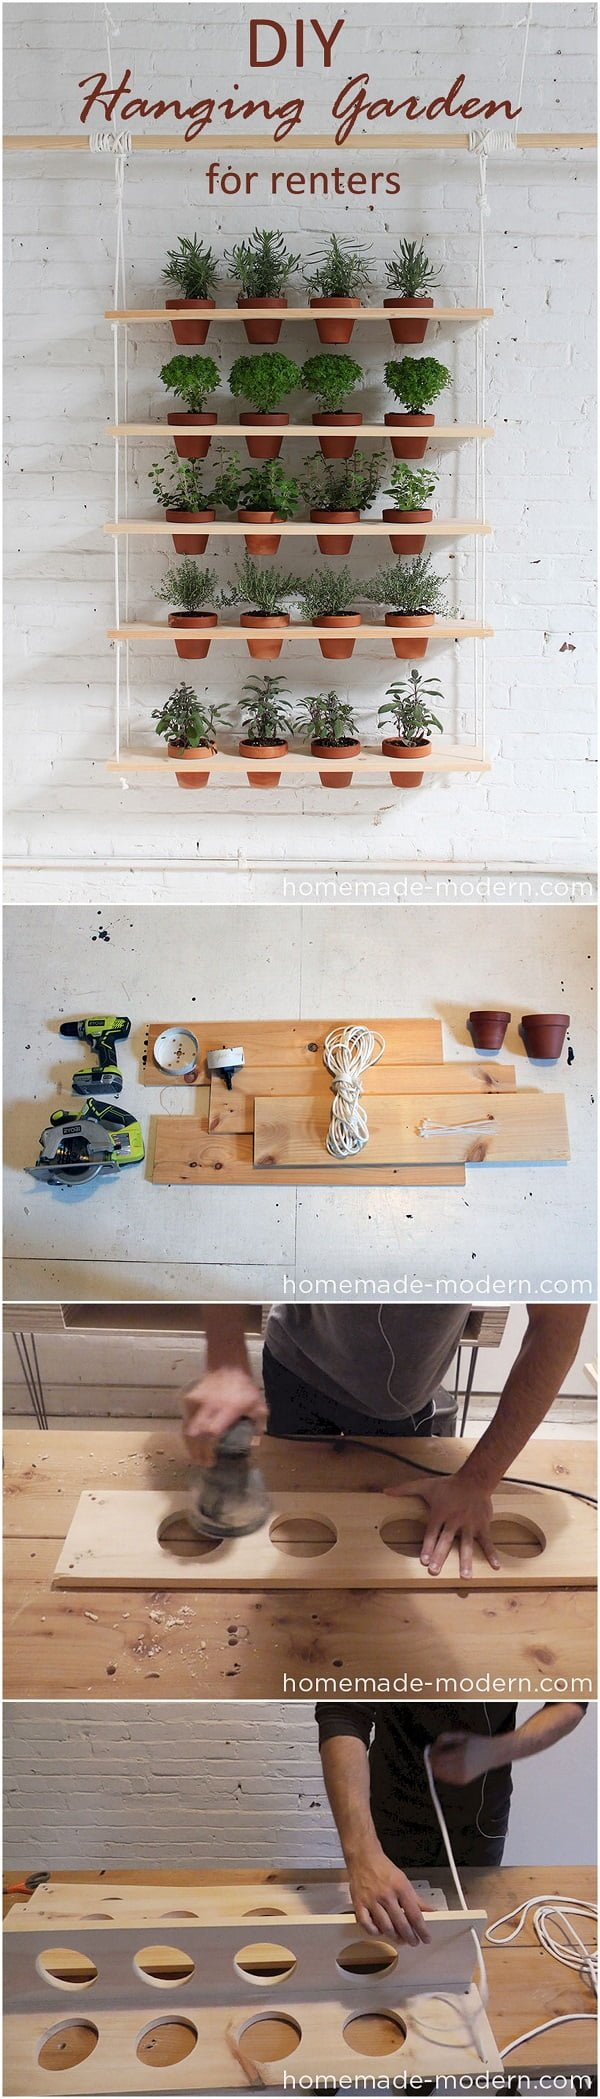 Check out this easy idea on how to make a #DIY hanging garden for #renters #homedecor #project